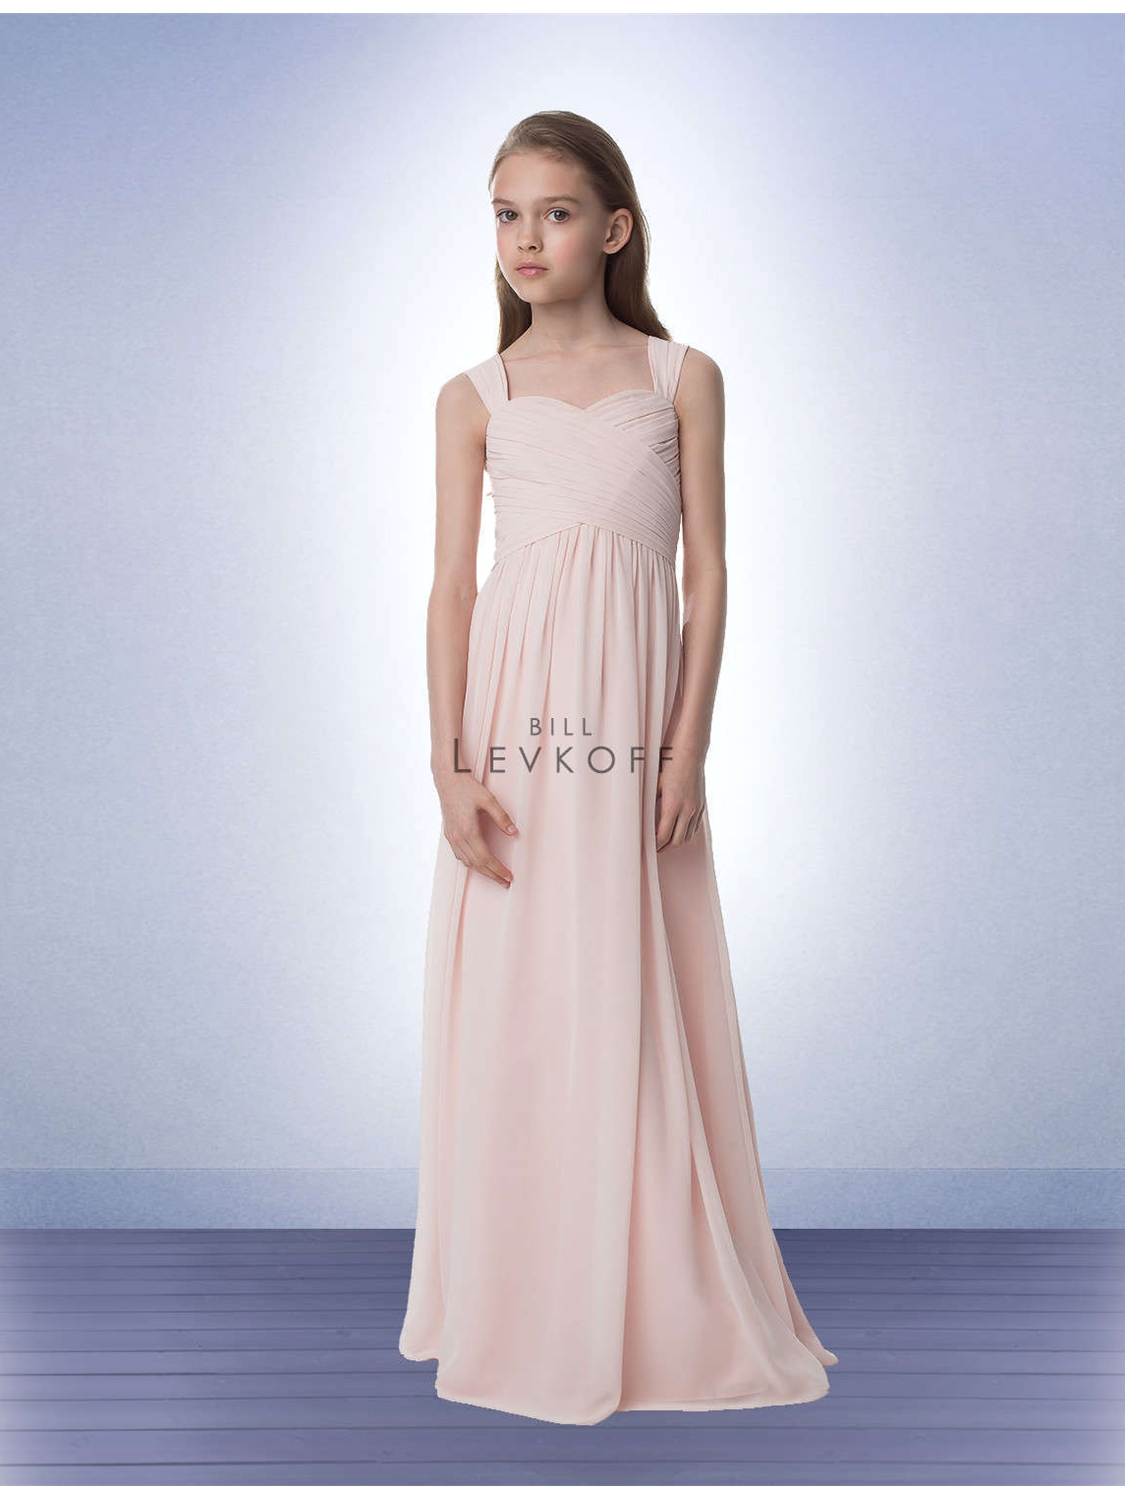 Bill levkoff junior bridesmaid dress style 16502 house of brides select color ombrellifo Images